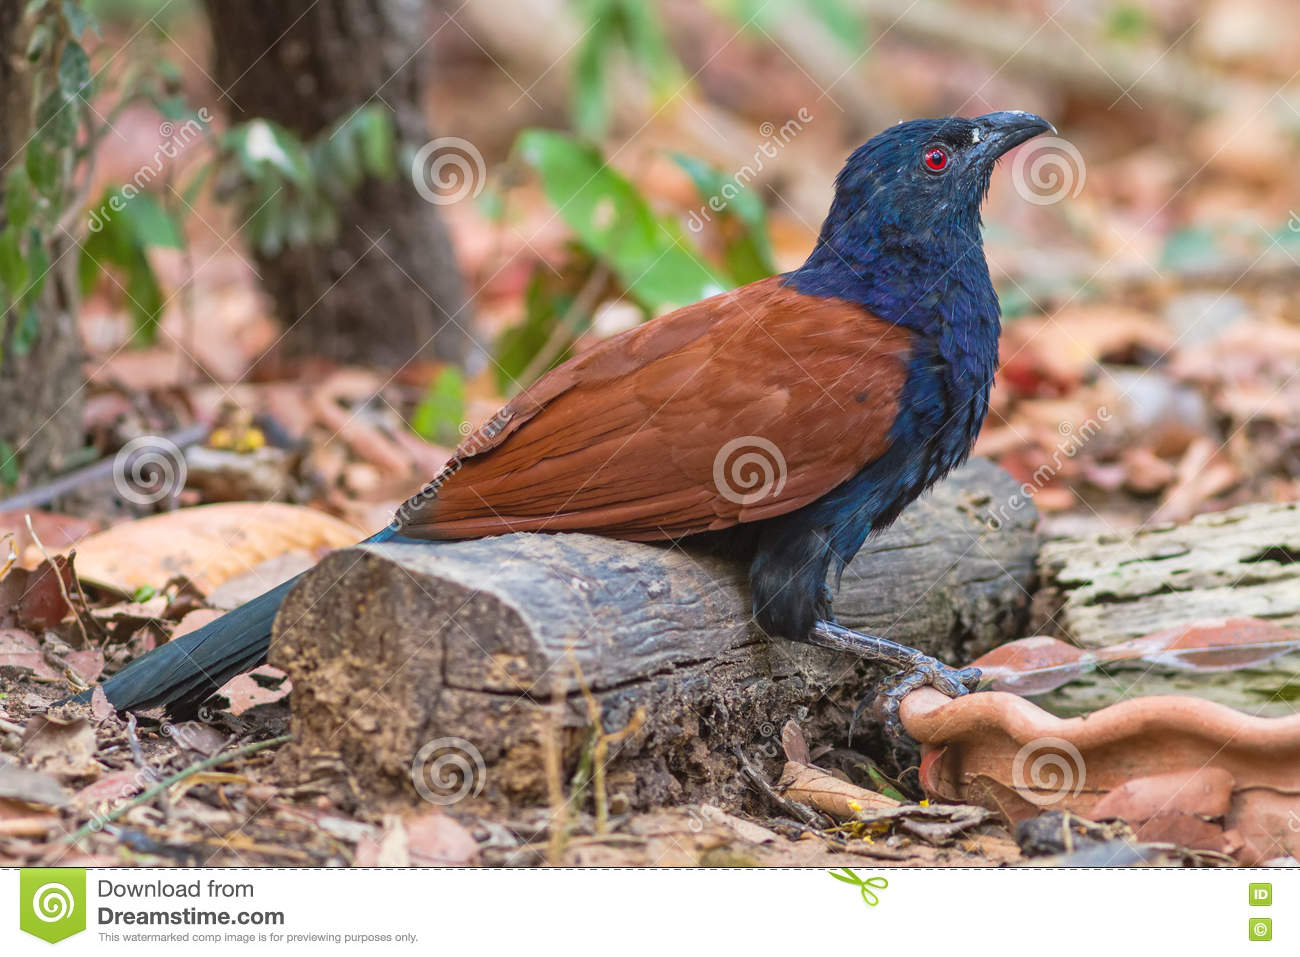 Beautiful Bird Greater Coucal Or Crow Pheasant Stock Photo.